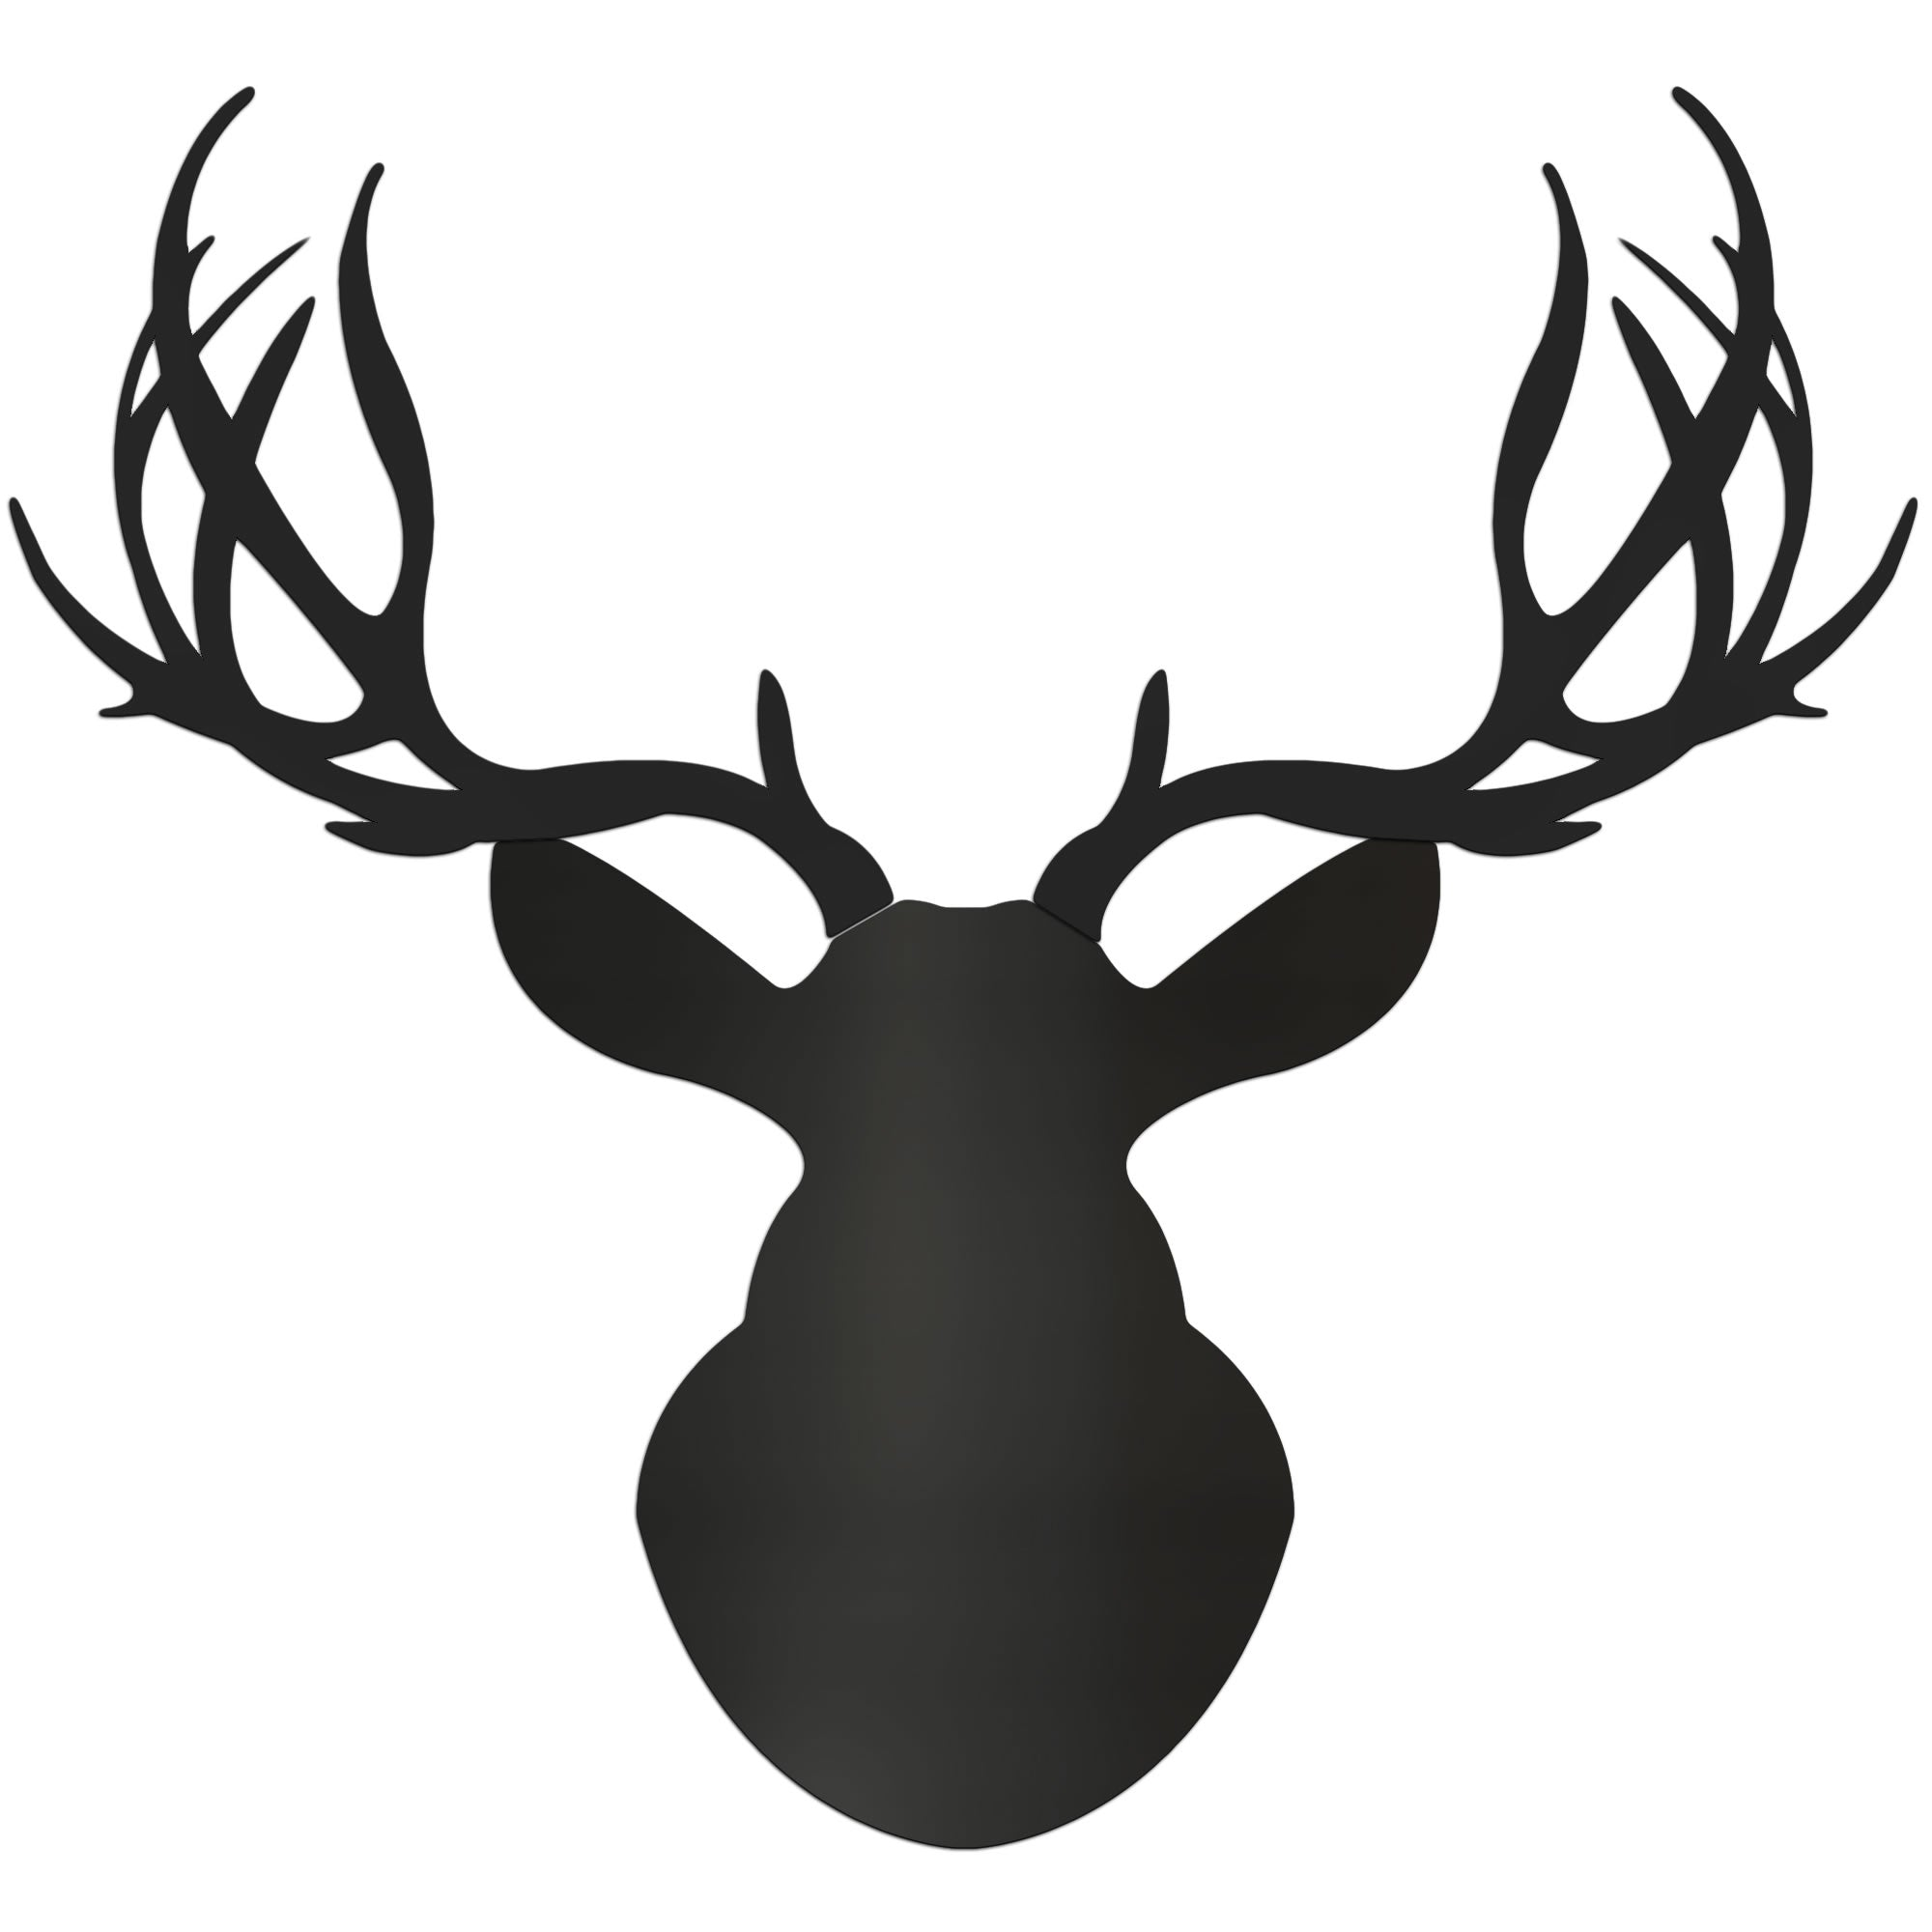 MIDNIGHT BUCK | 36x36 in. Pure Black Deer Cut-Out